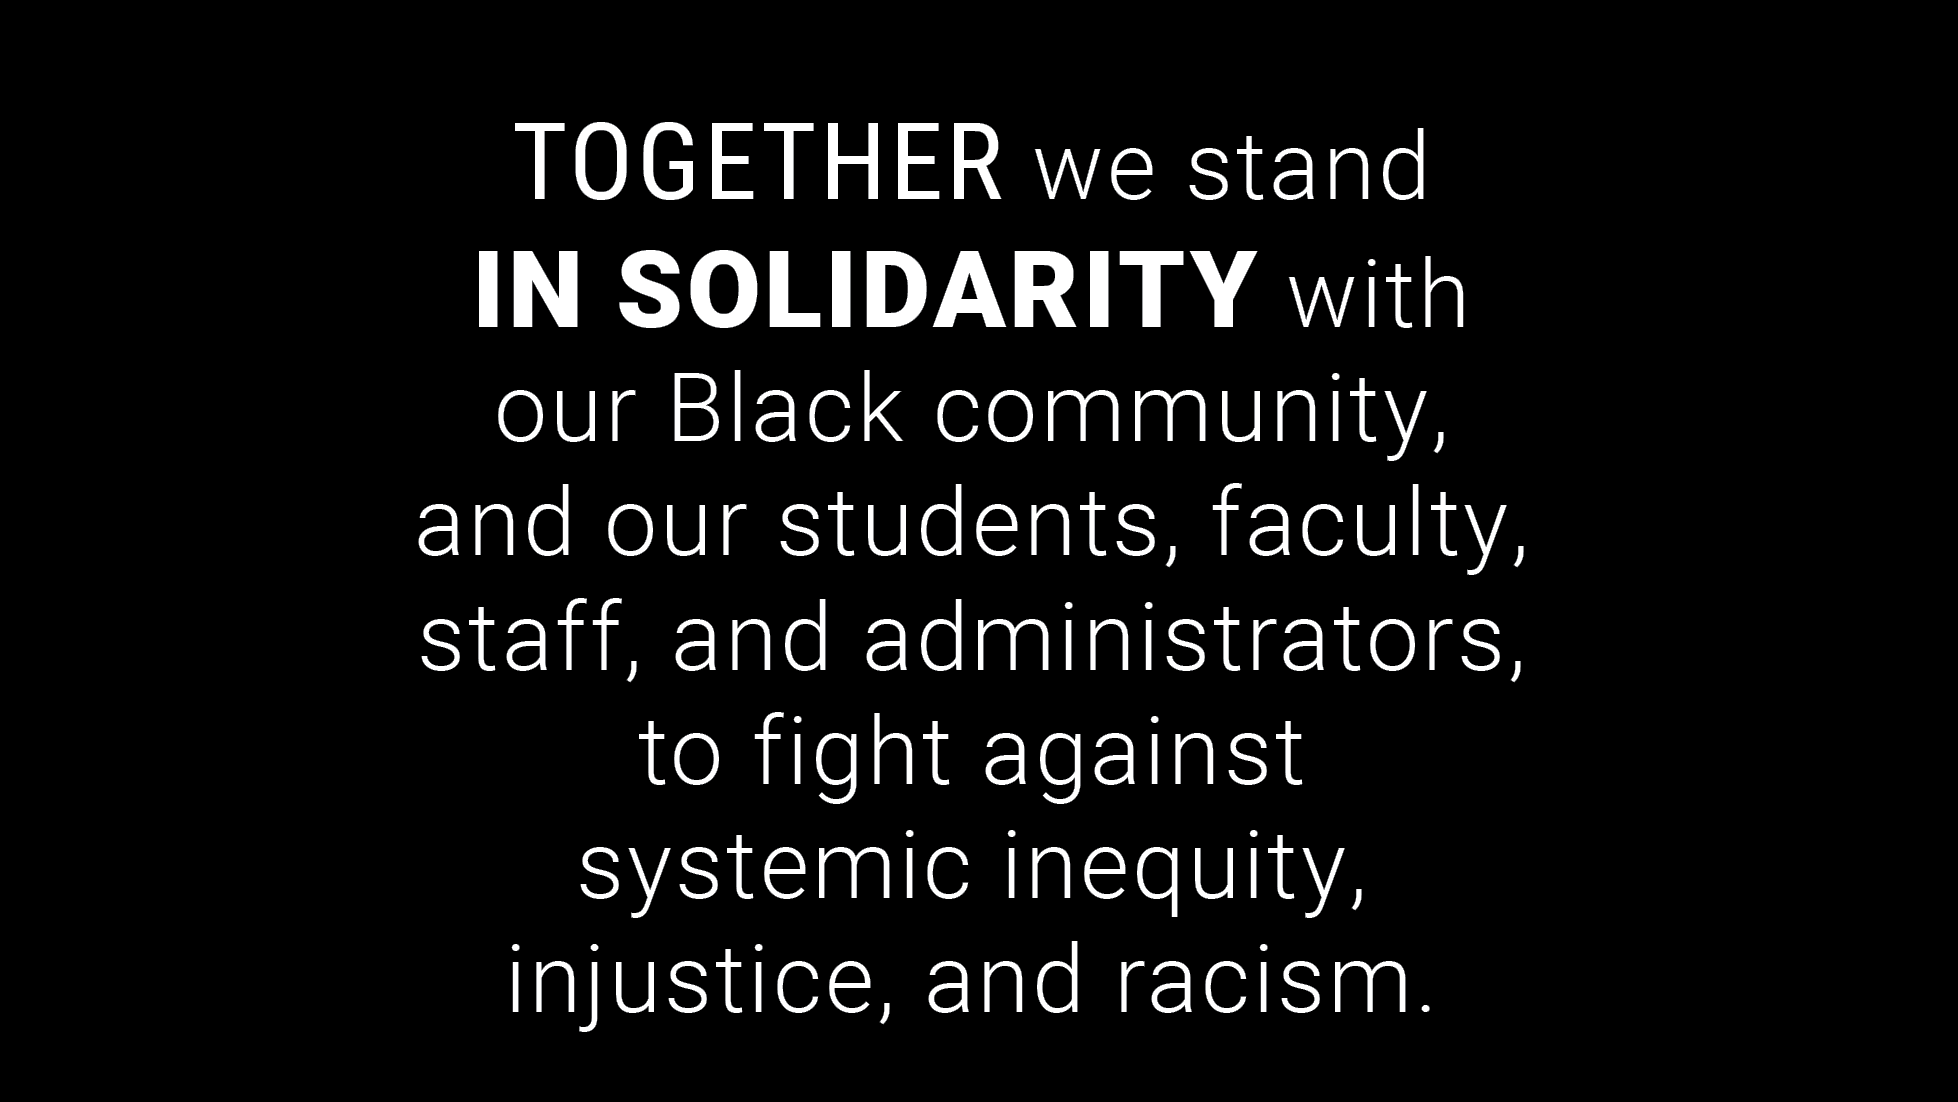 Together we stand in solidarity with our Black community, and our students, faculty, staff, and administrators, to fight against systemic inequity, injustice, and racism.